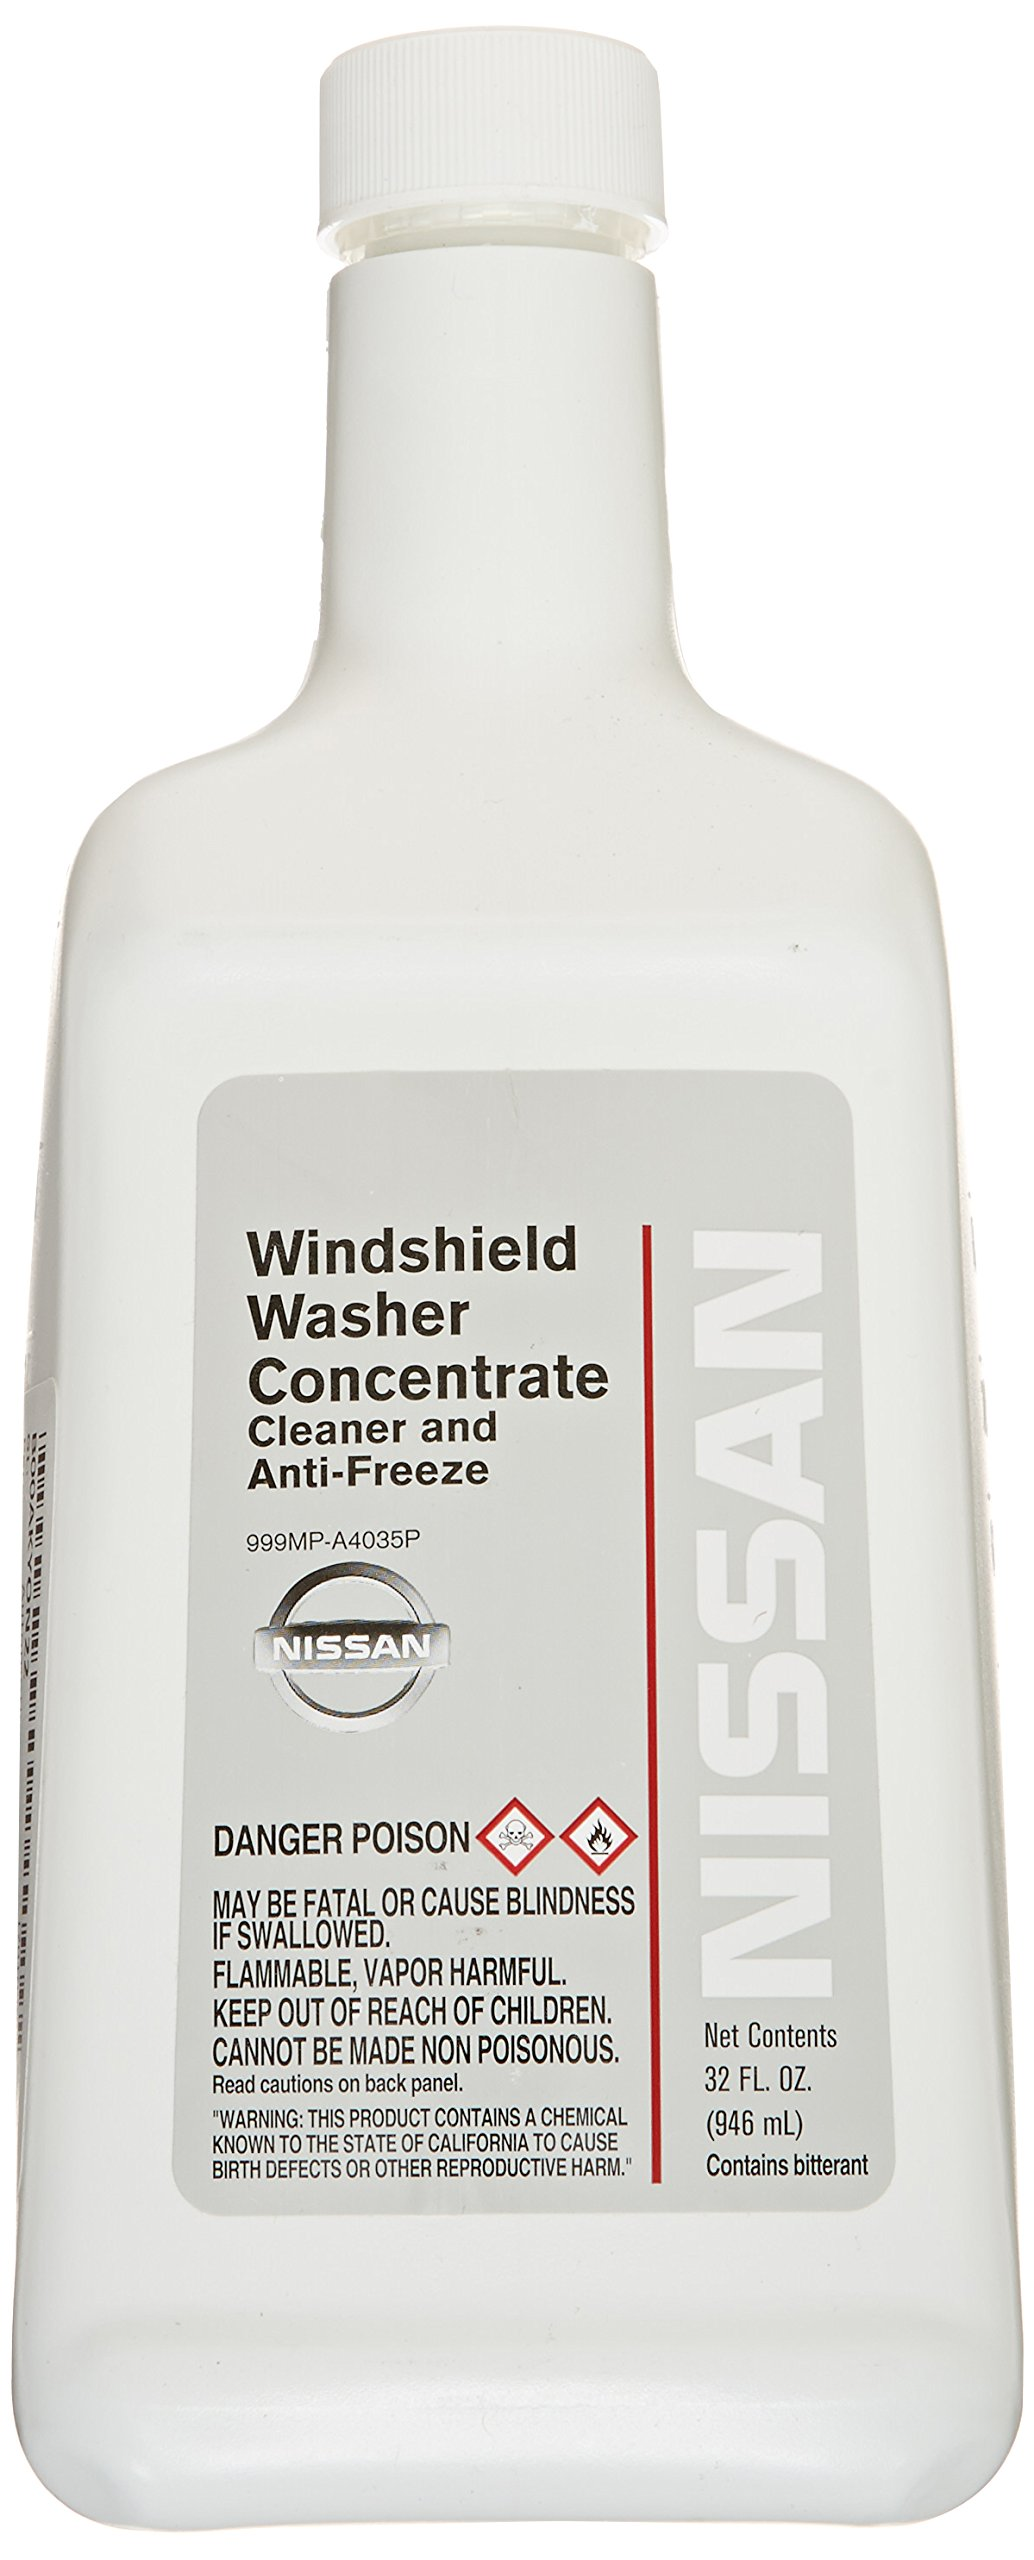 Genuine Nissan Fluid 999MP-A4035P Windshield Washer Concentrate - 32 oz. by Nissan